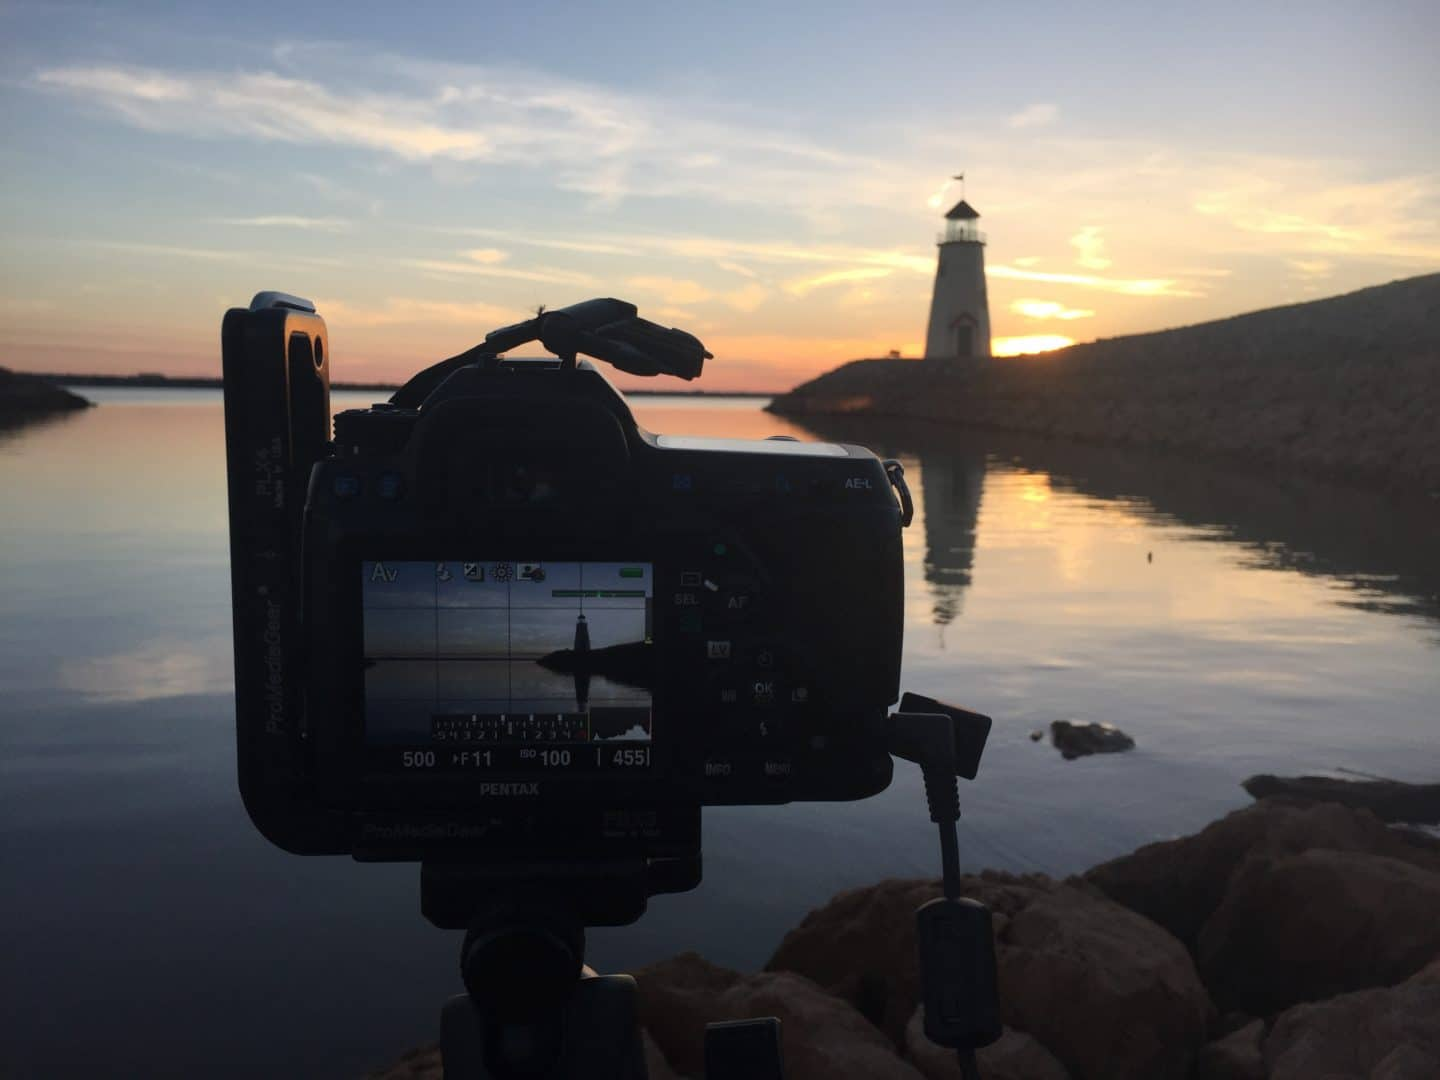 """The Pentax K-5 II did good by me and our adventures. Here we were catching sunset at Lake Hefner, Oklahoma. Yes, you read that right, there is a lighthouse in Oklahoma. From """"Switching Camera Brands"""" Copyright 2020 Stanly Harper"""